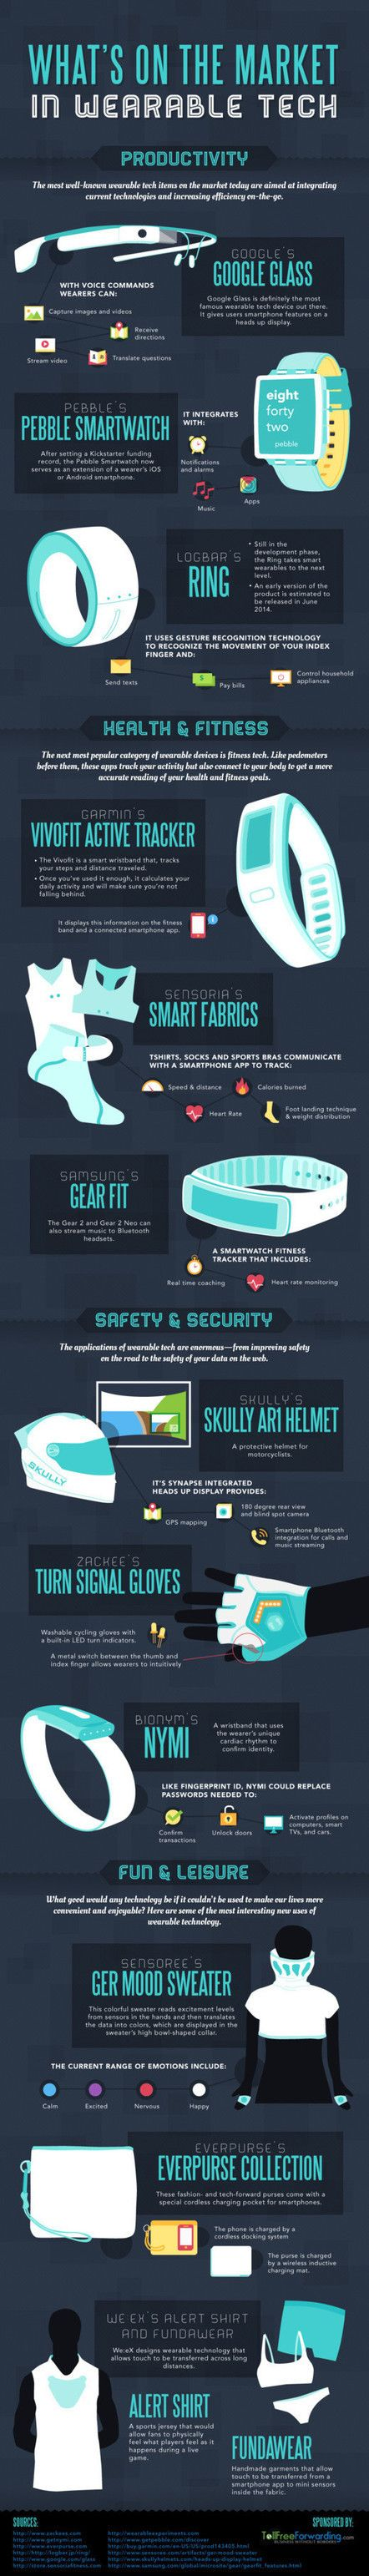 What's in the Market in Wearable Tech? cc @Xavier Lambrecht Lambrecht Iglesias @Frederic Chamberland Chamberland Llordachs